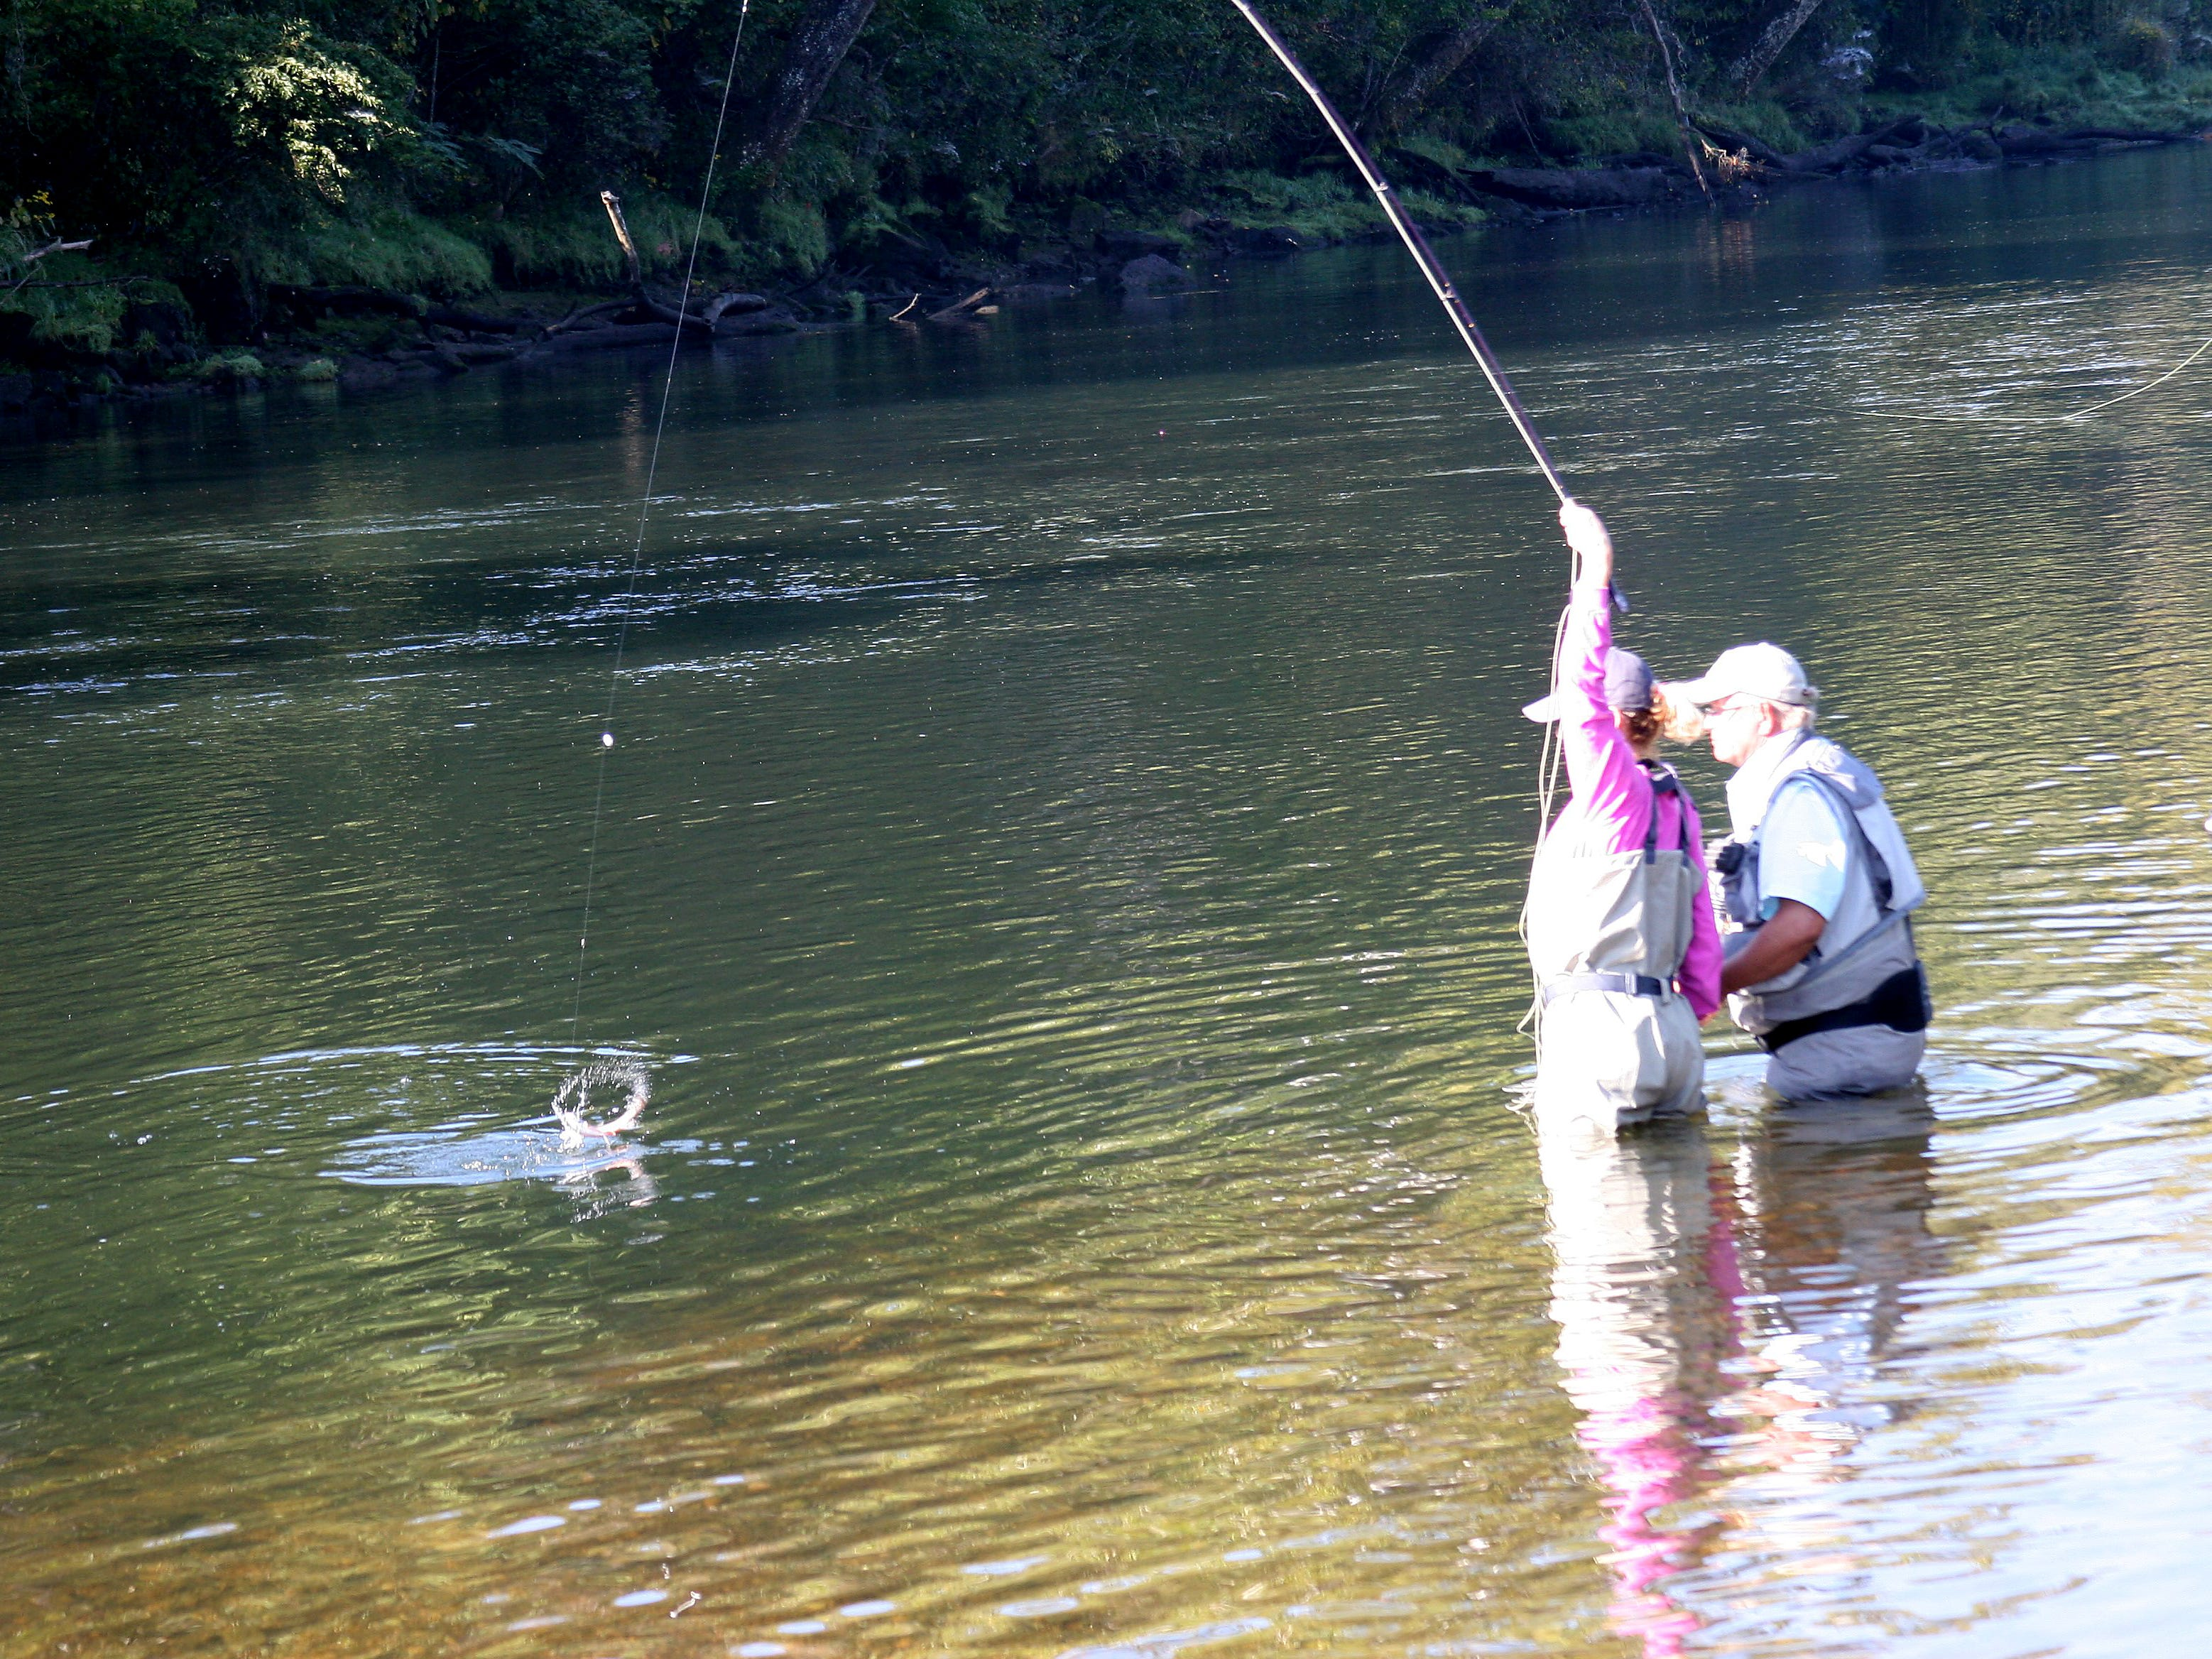 And within minutes of her first few casts, Jackie Bolt of Bentonville caught her first trout with the help of volunteer guide Kevin Brandtonies of Gassville.